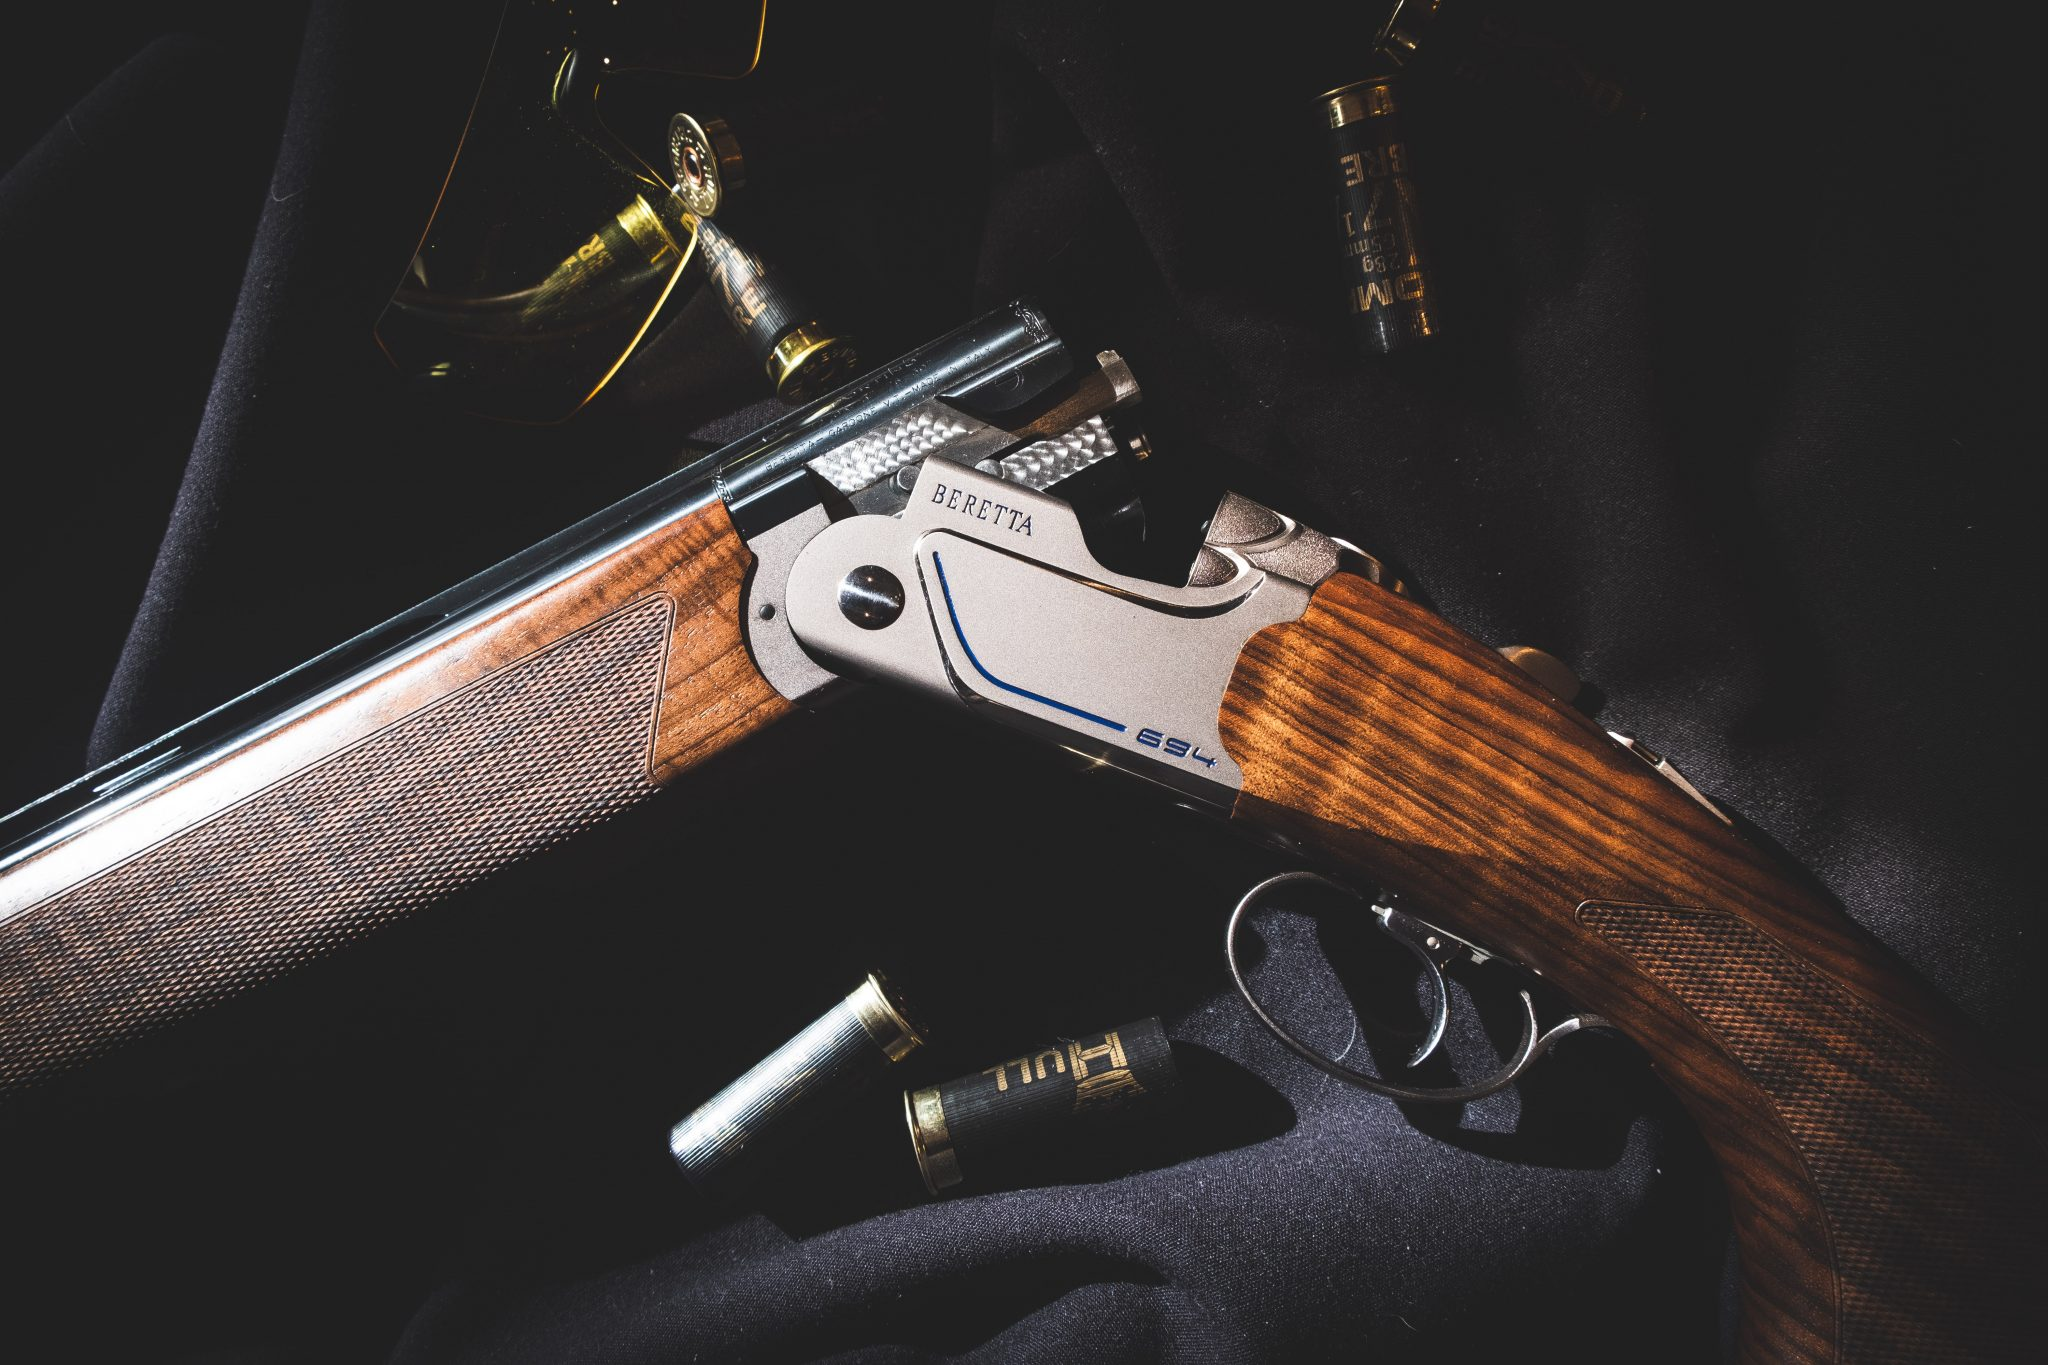 Beretta 694 from Sportarm at Lady's Wood